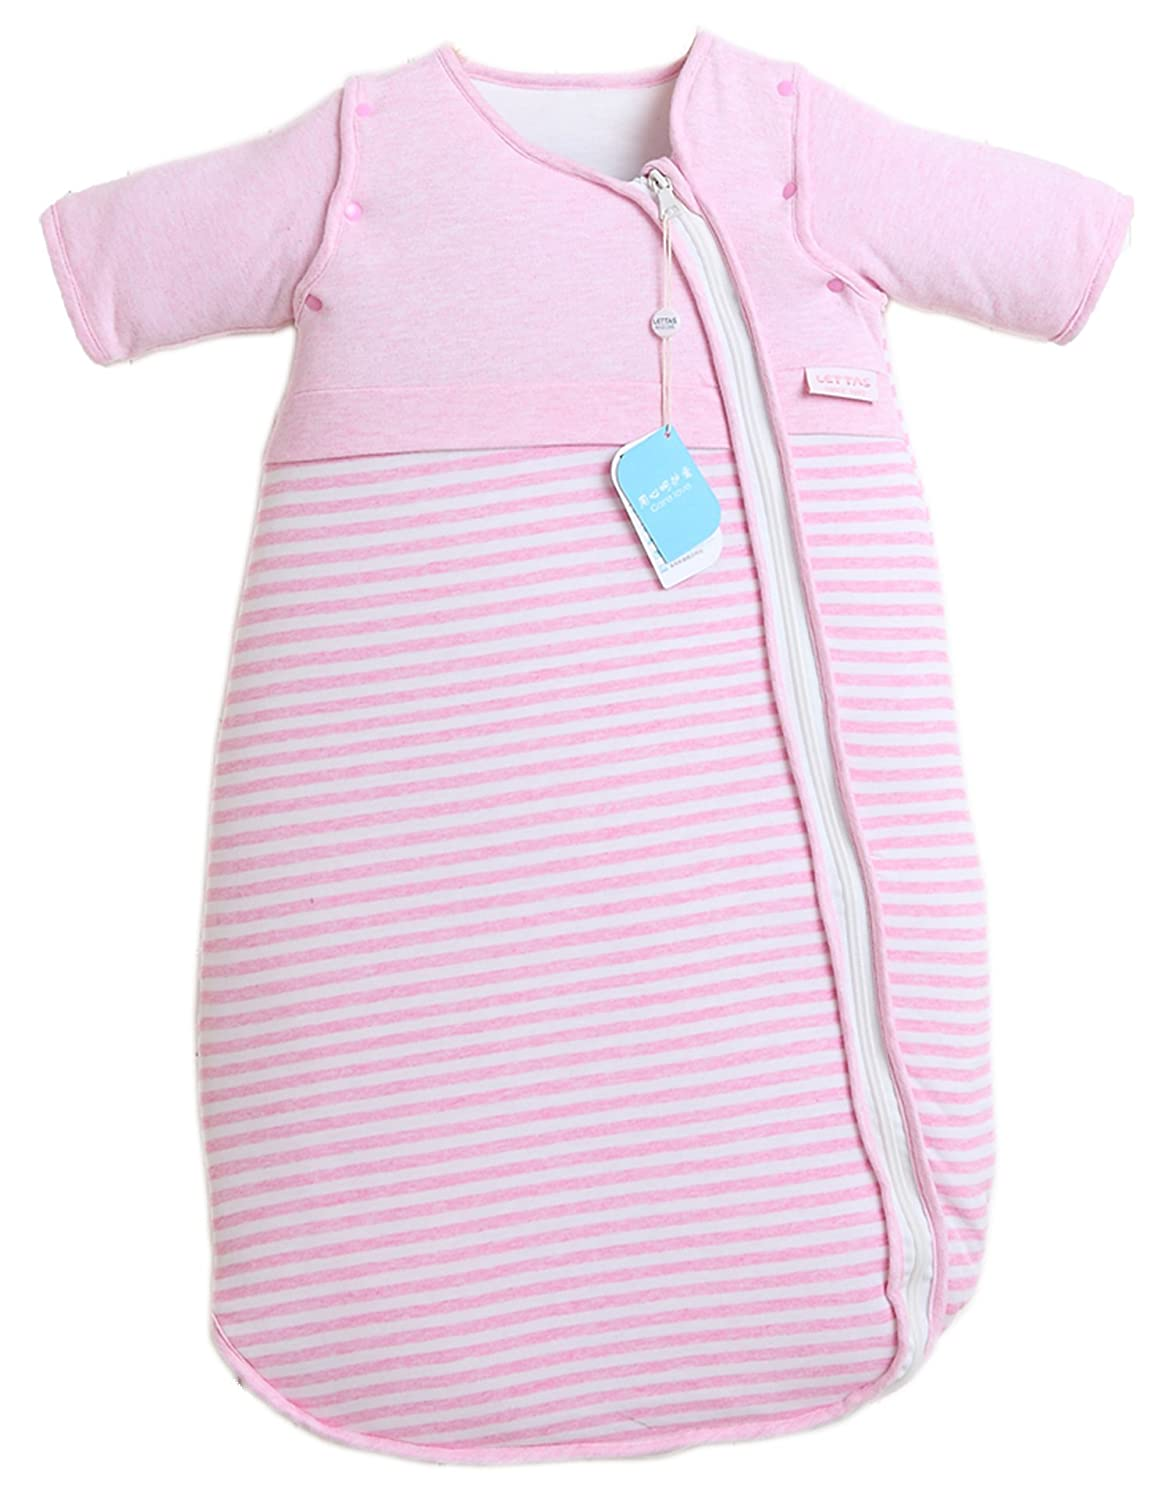 LETTAS Baby Girls Cotton Removable Long Sleeve Zip up Sleeping Bag Thicken Autumn Winter Pink (12-24 Months,M) LT017ThinPinkM